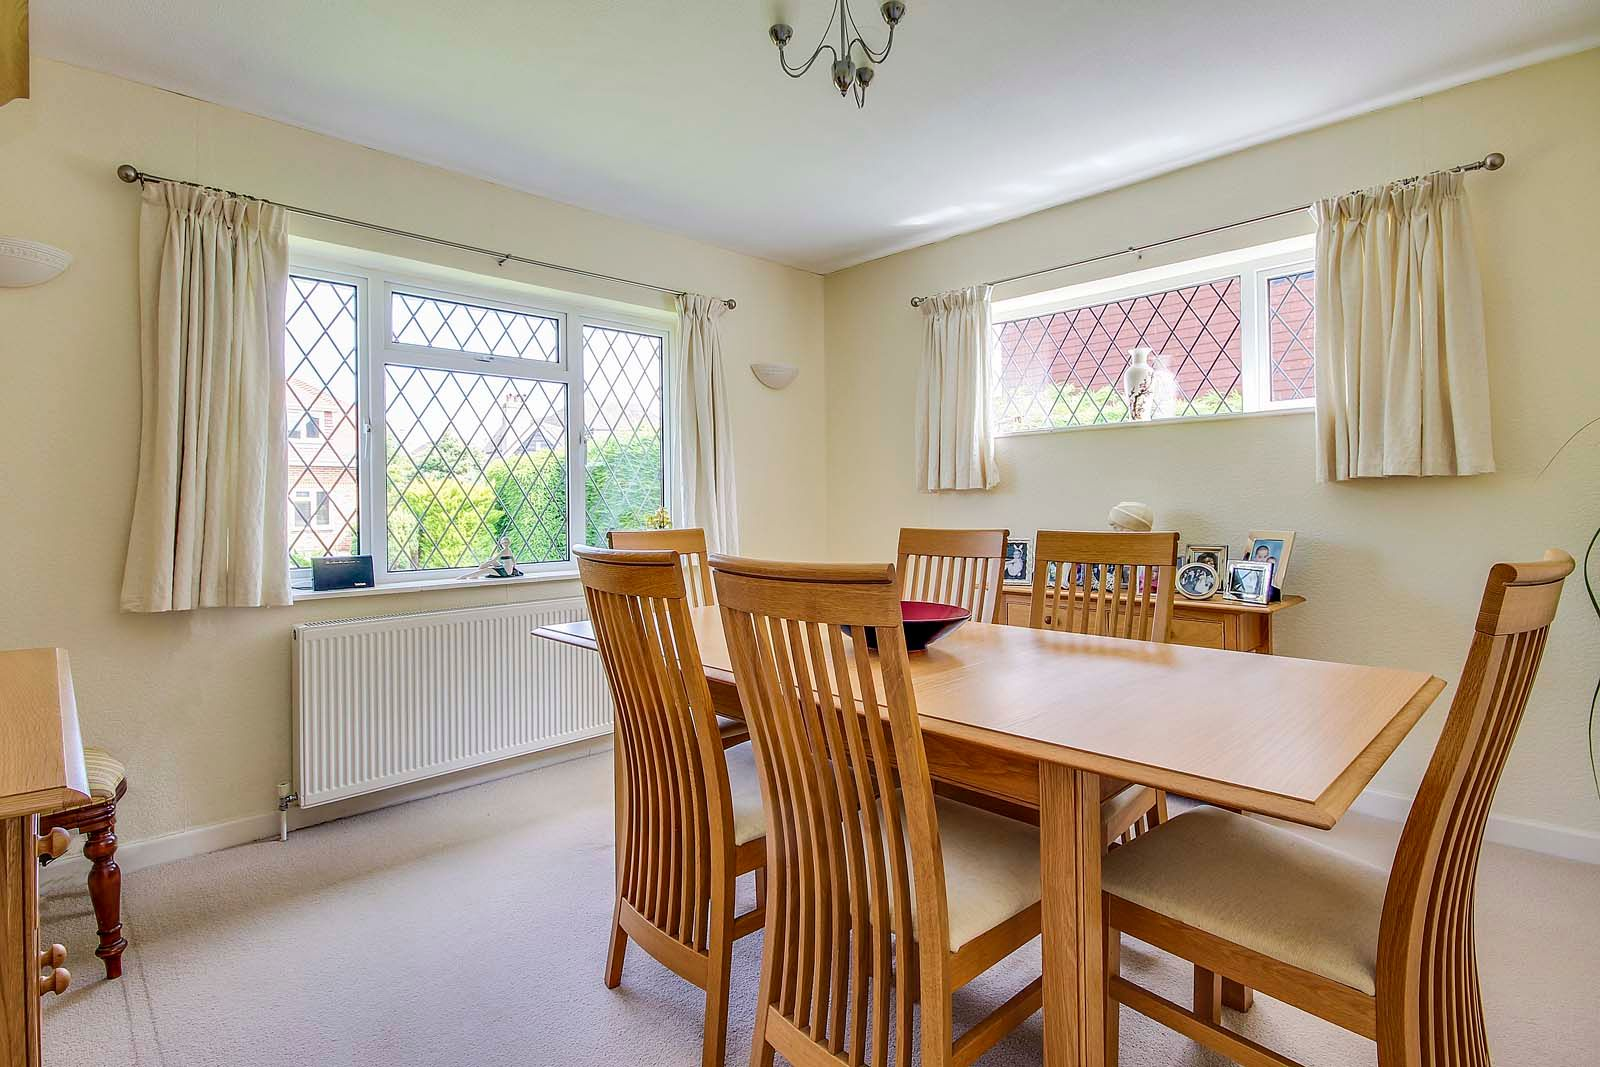 3 bed House for sale in Rustington - Dining room (Property Image 3)